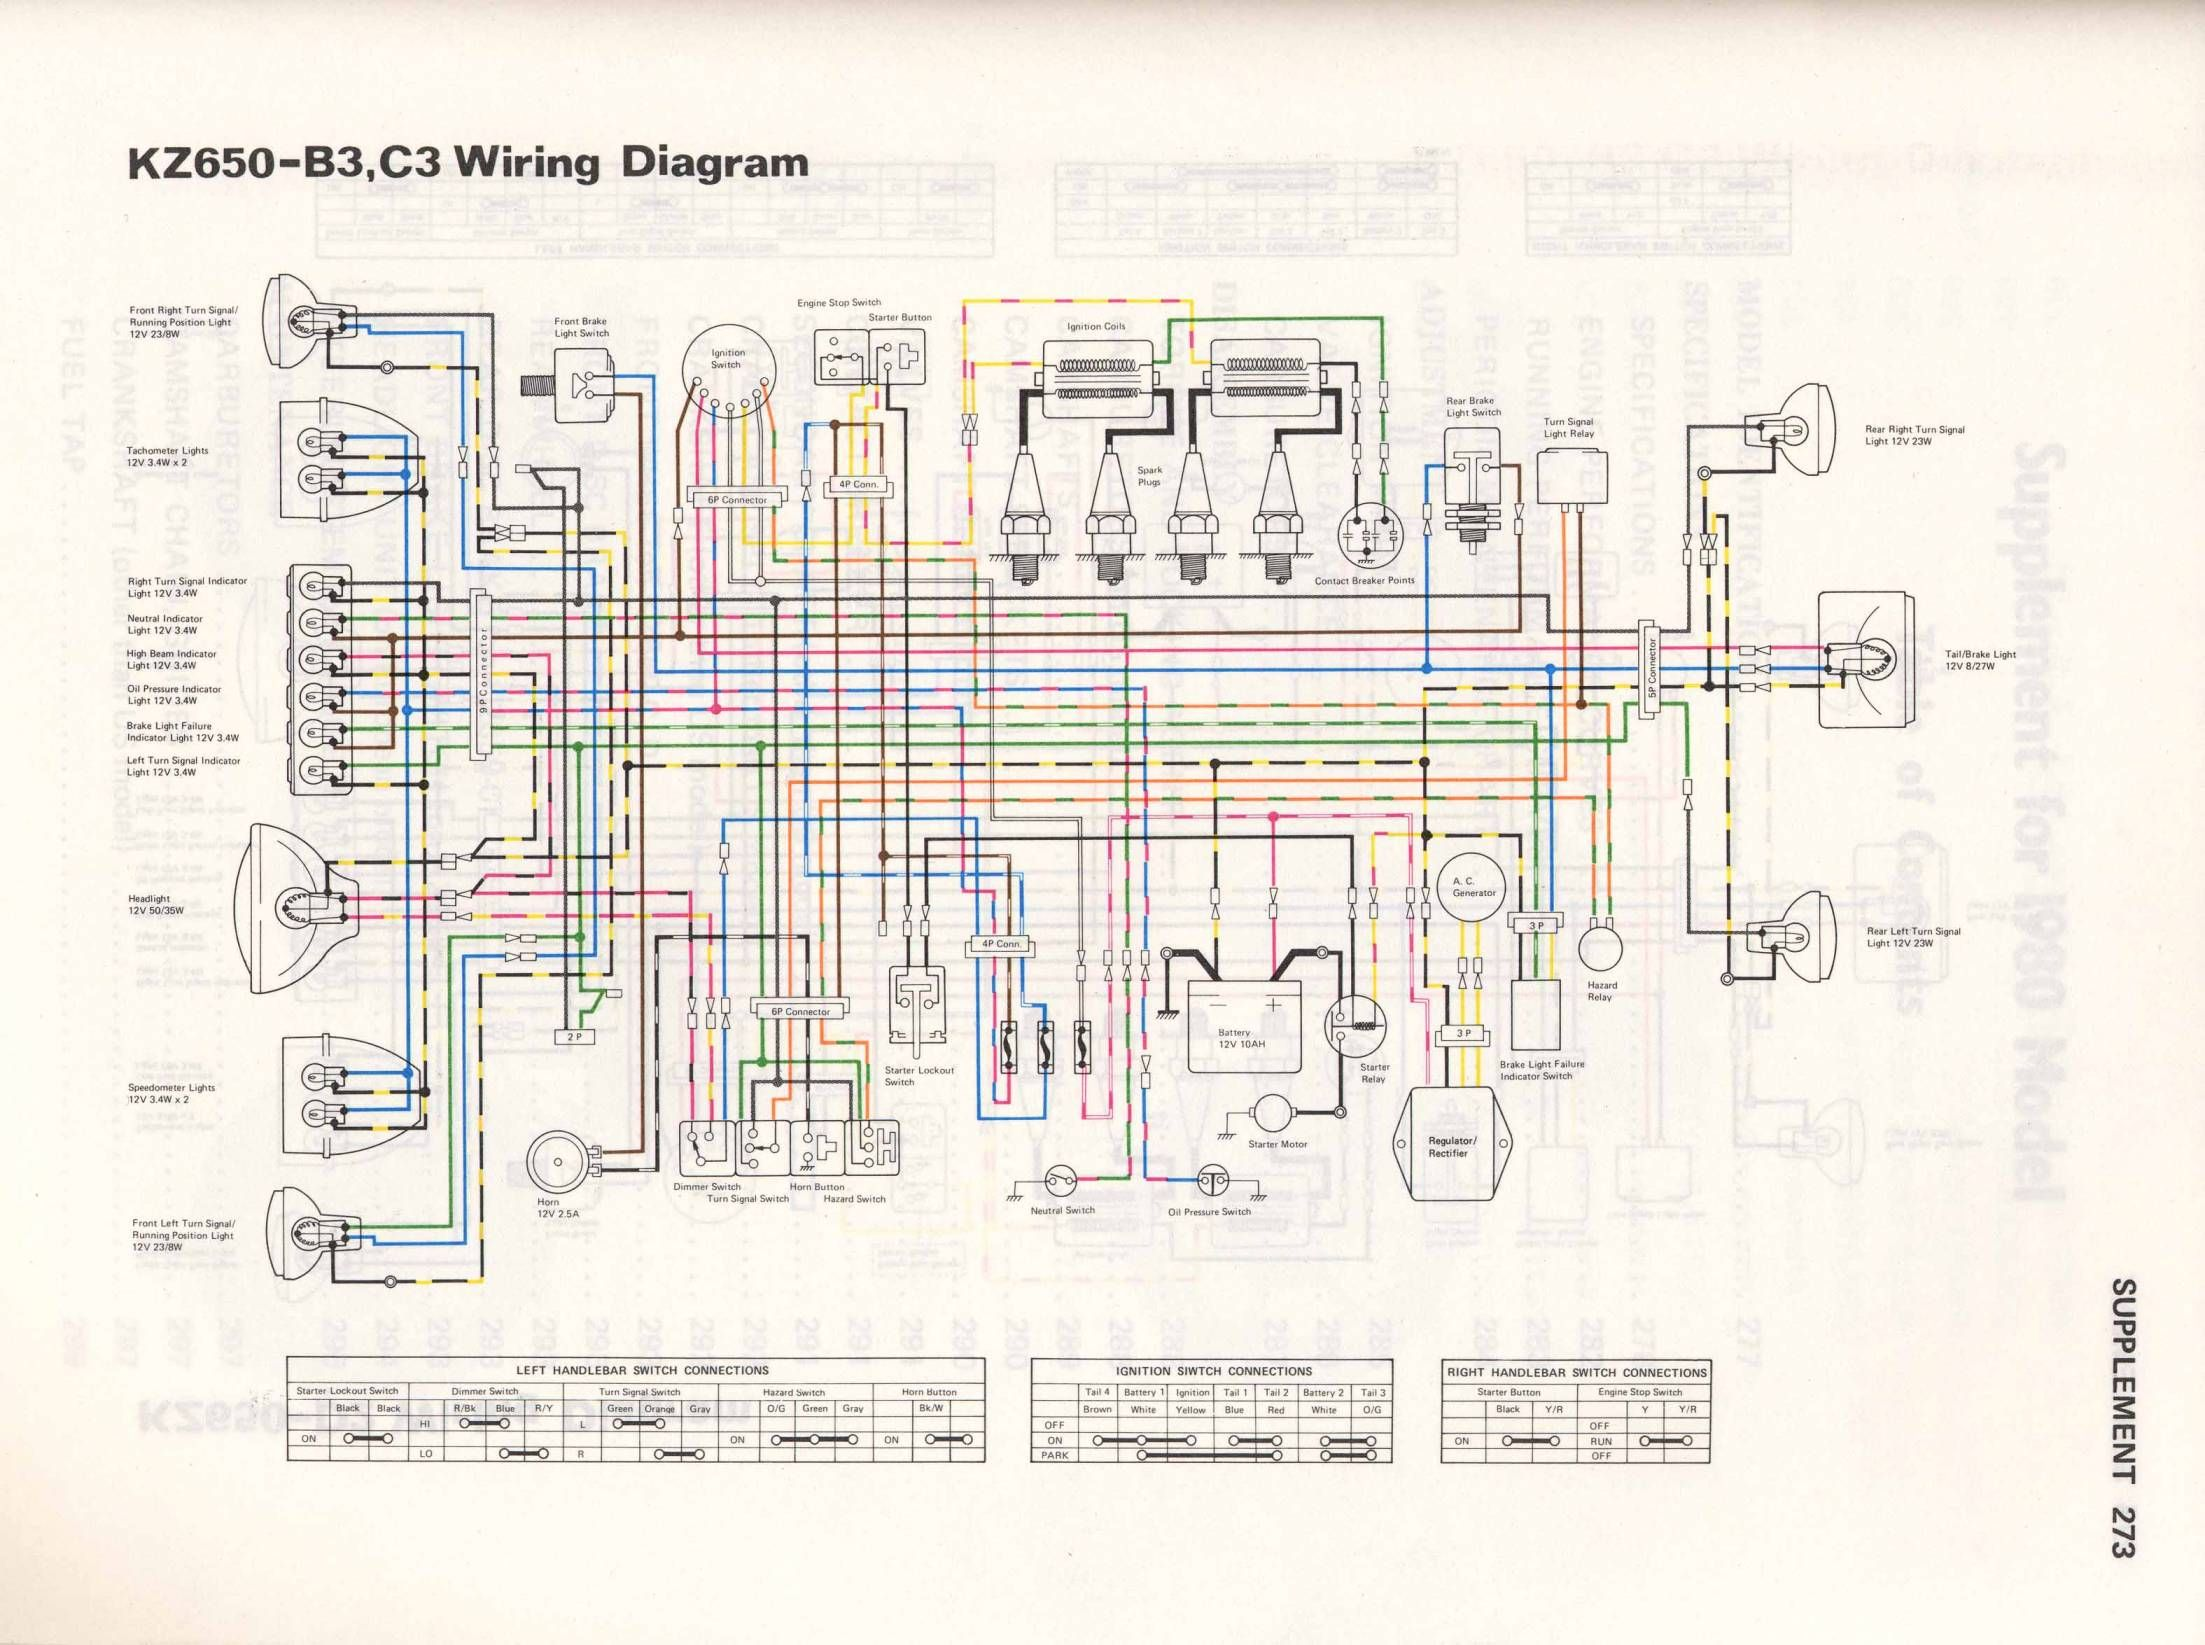 12 Motorcycle Hand Controls Diagram Electrical Wiring Diagram Motorcycle Wiring Diagram